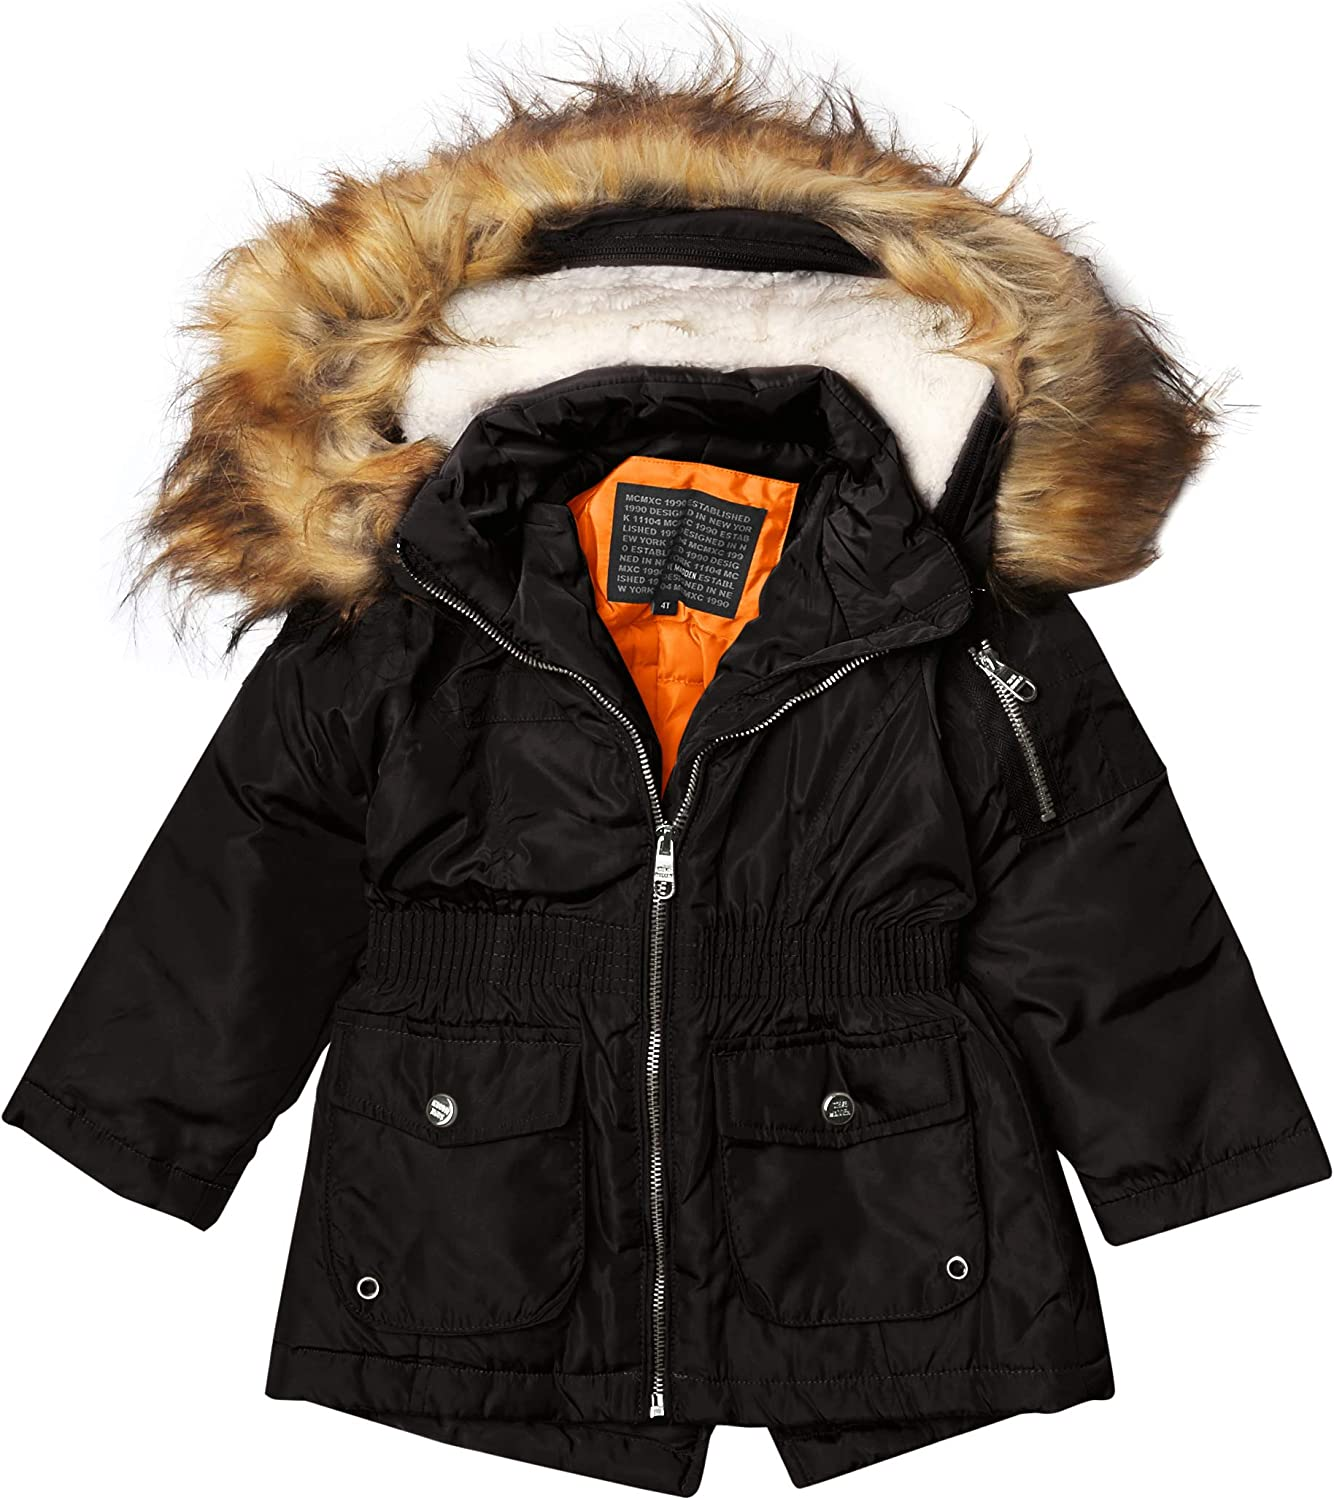 Steve Madden Girls' Luxury Special price for a limited time goods Jacket Med Weight